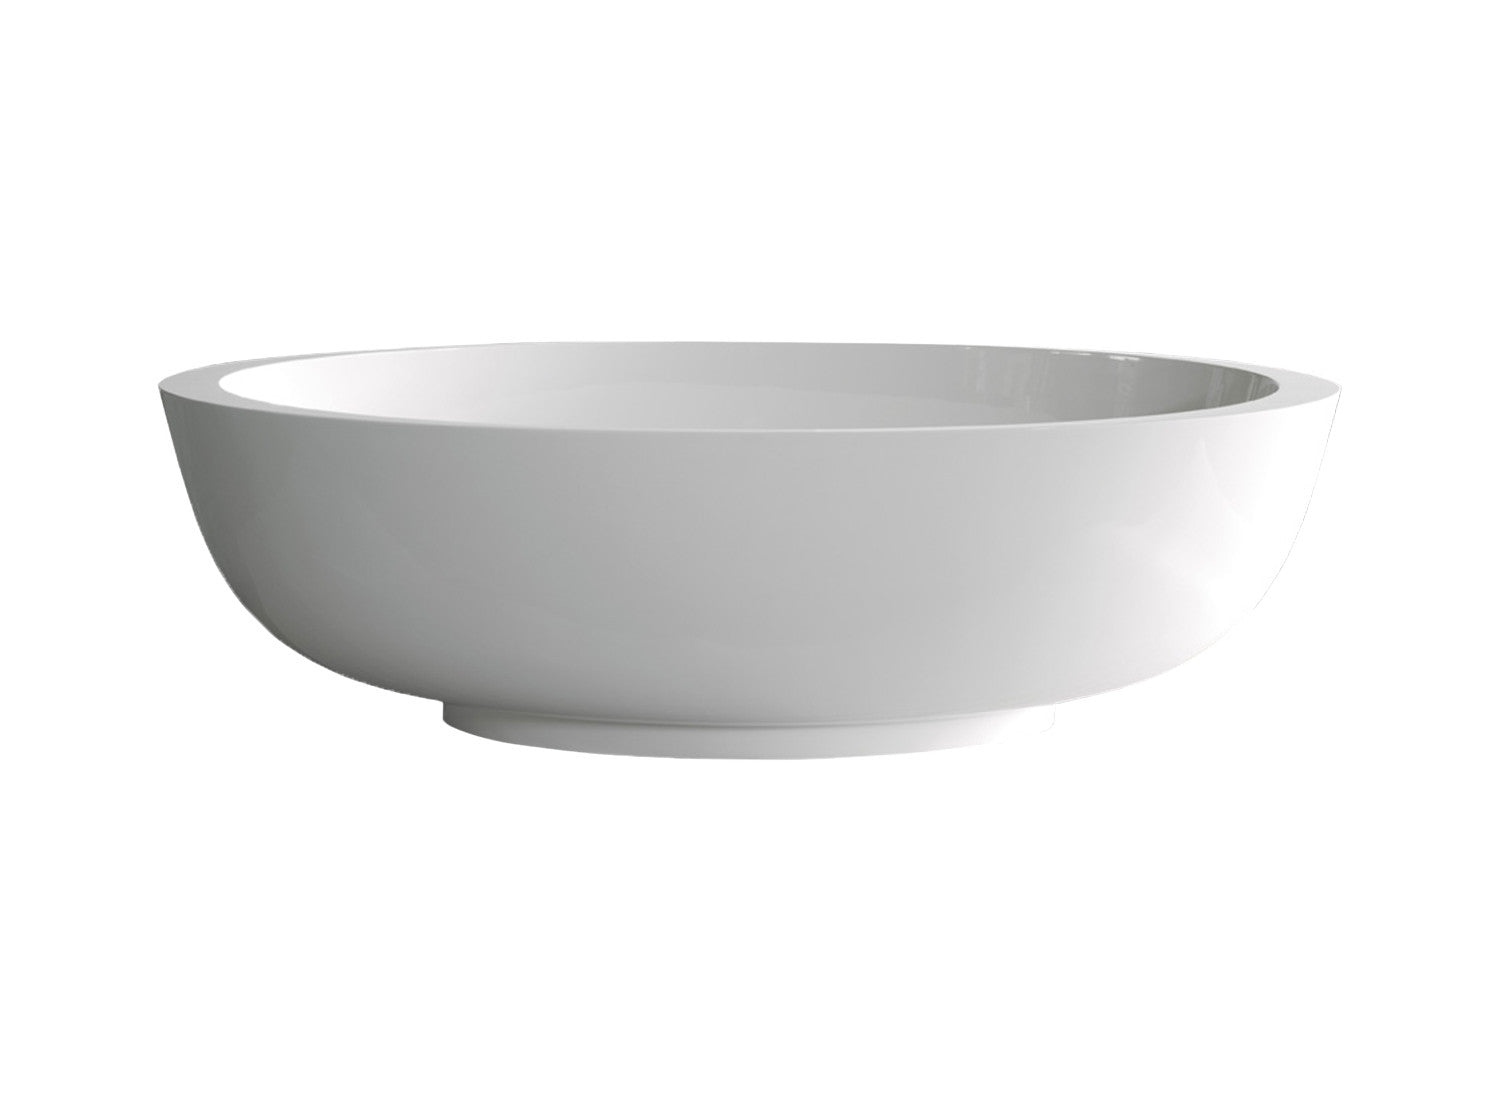 Nest Freestanding Bathtub